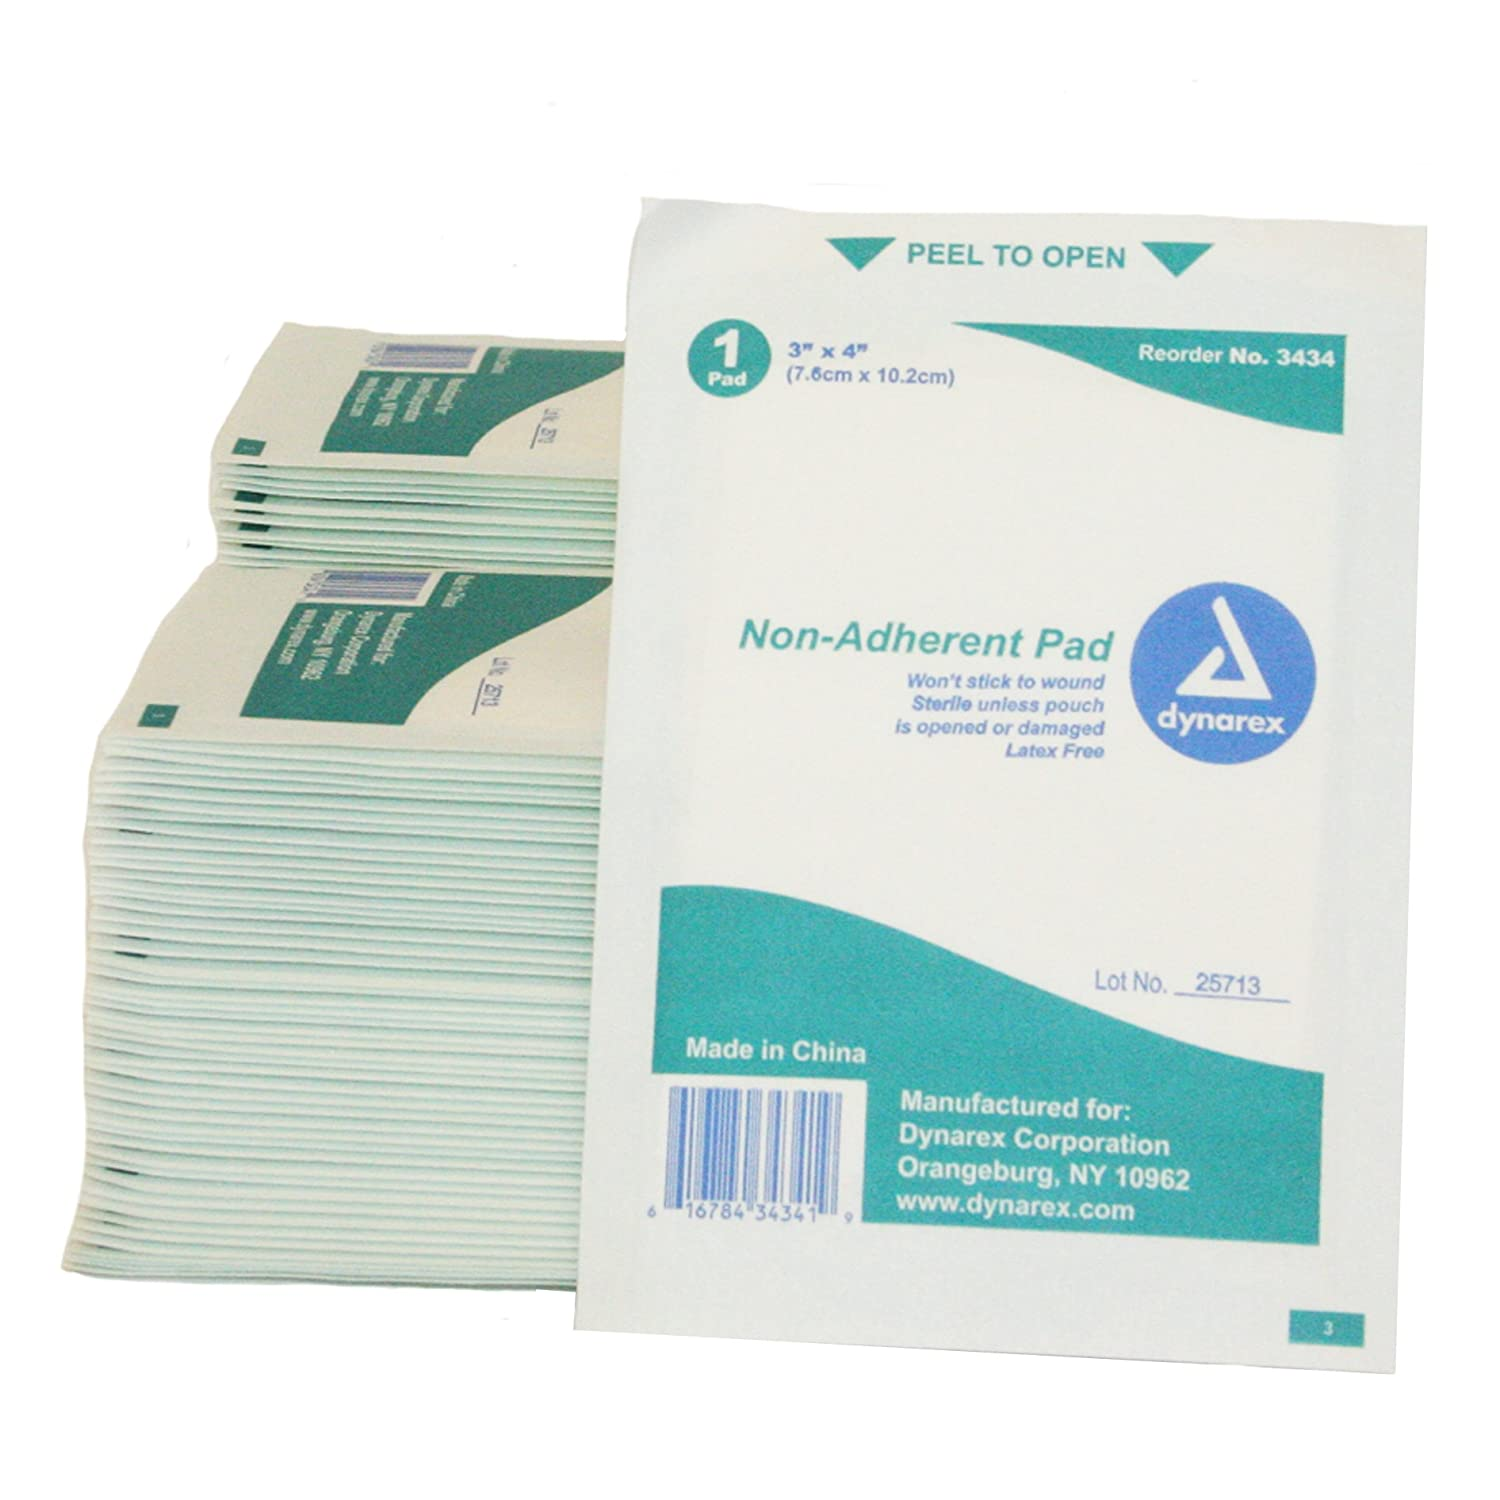 """Nice First Voice TS-3434-100 Mesh Non-Adherent Pads, 3"""" x 4"""", Sterile (Pack of 100)"""